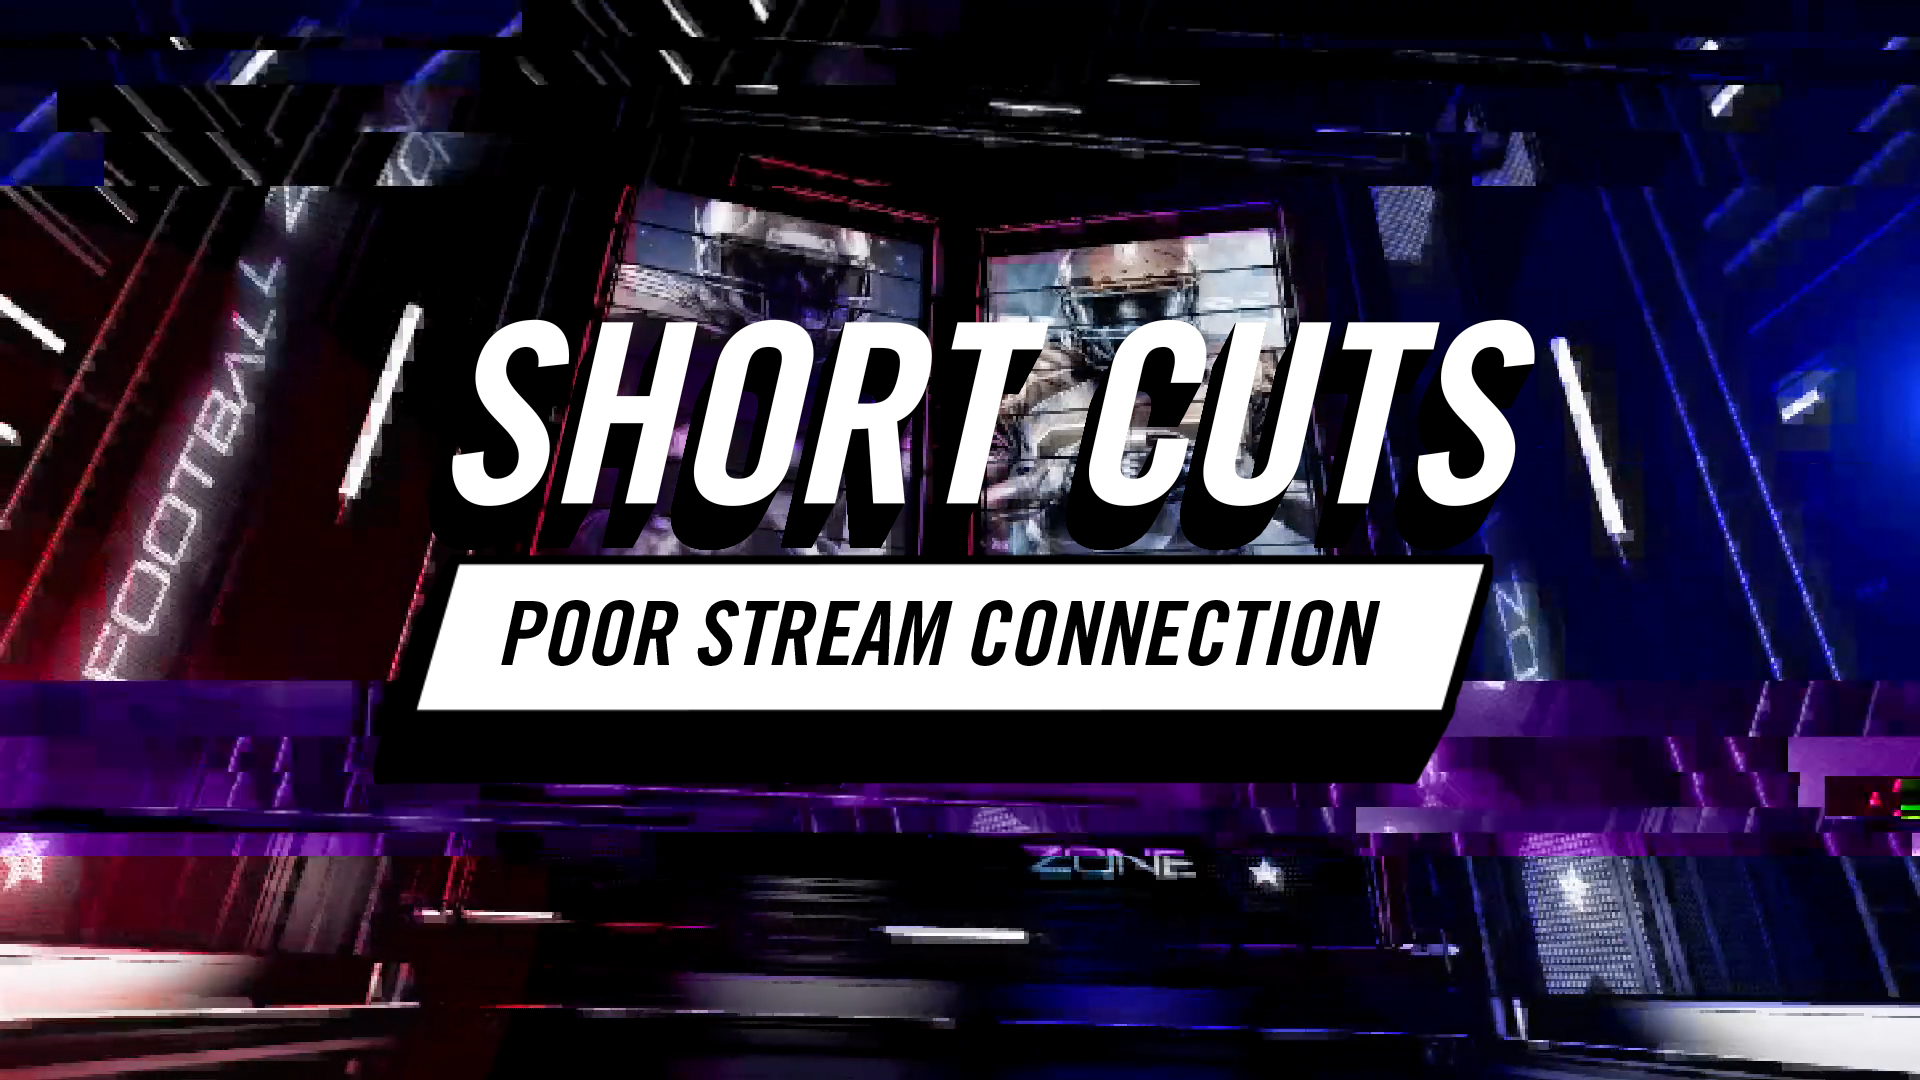 Short Cuts | How to Simulate Poor Streaming Connection with Universe Glitch in Adobe Premiere Pro CC